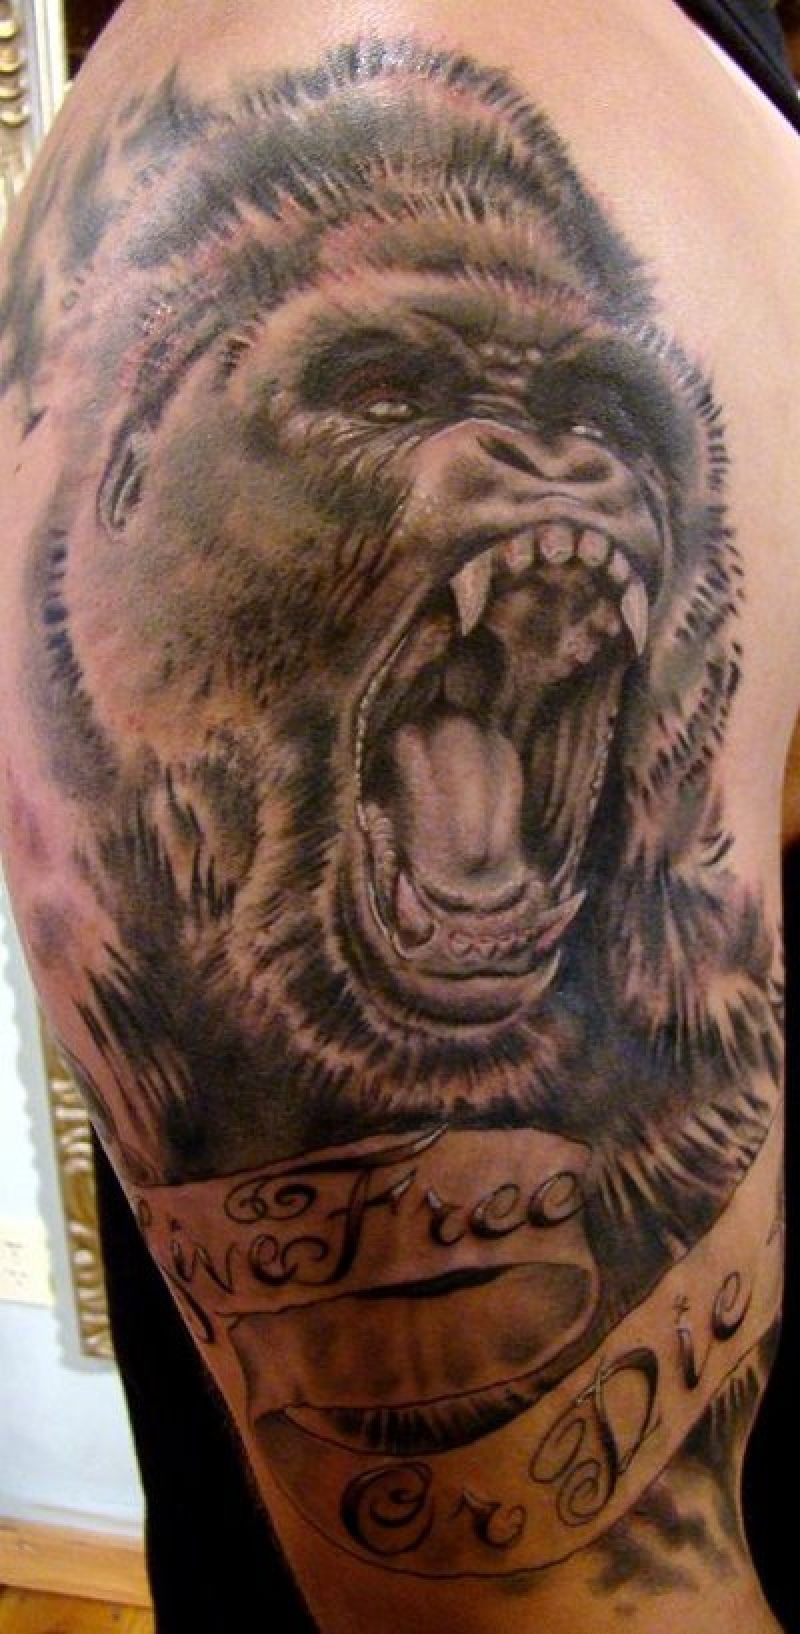 Gnarling gorilla head with ribboned lettering tattoo on upper arm